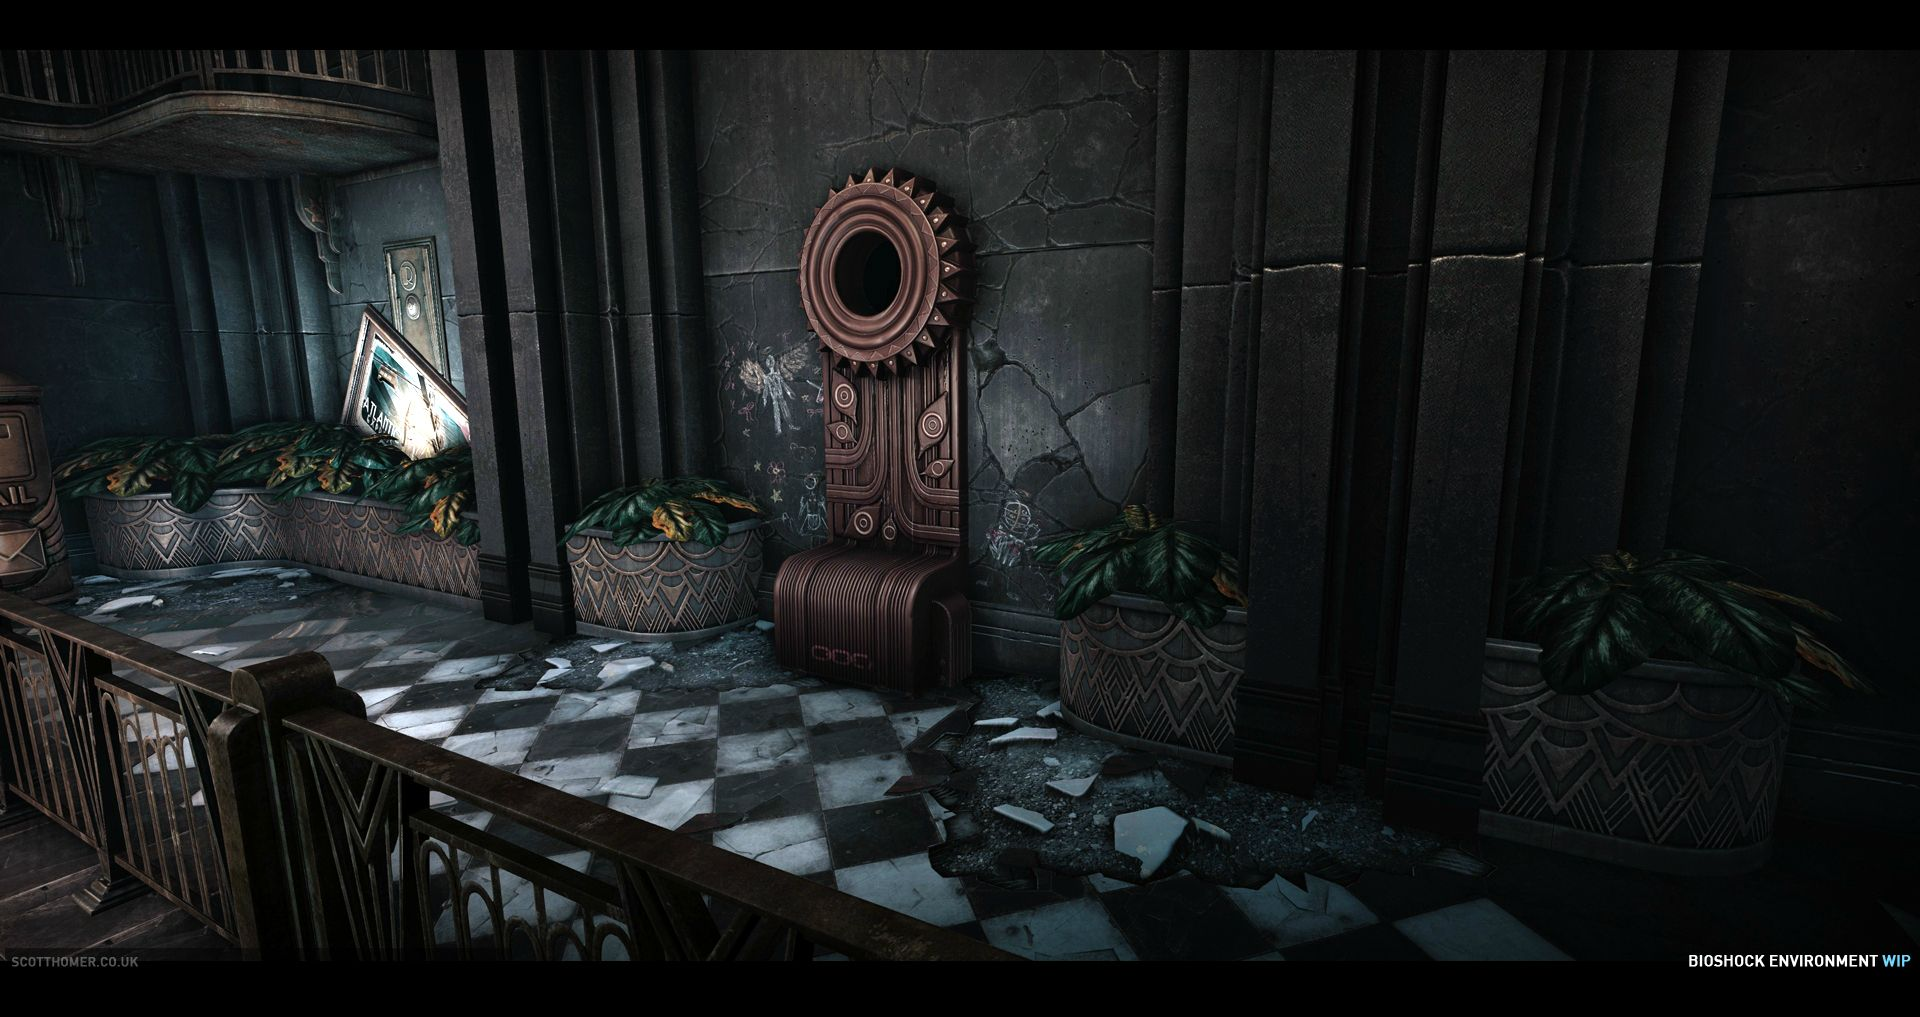 Best Ps Vita Games >> Bioshock environments recreated in CryEngine 3 by a Crytek ...